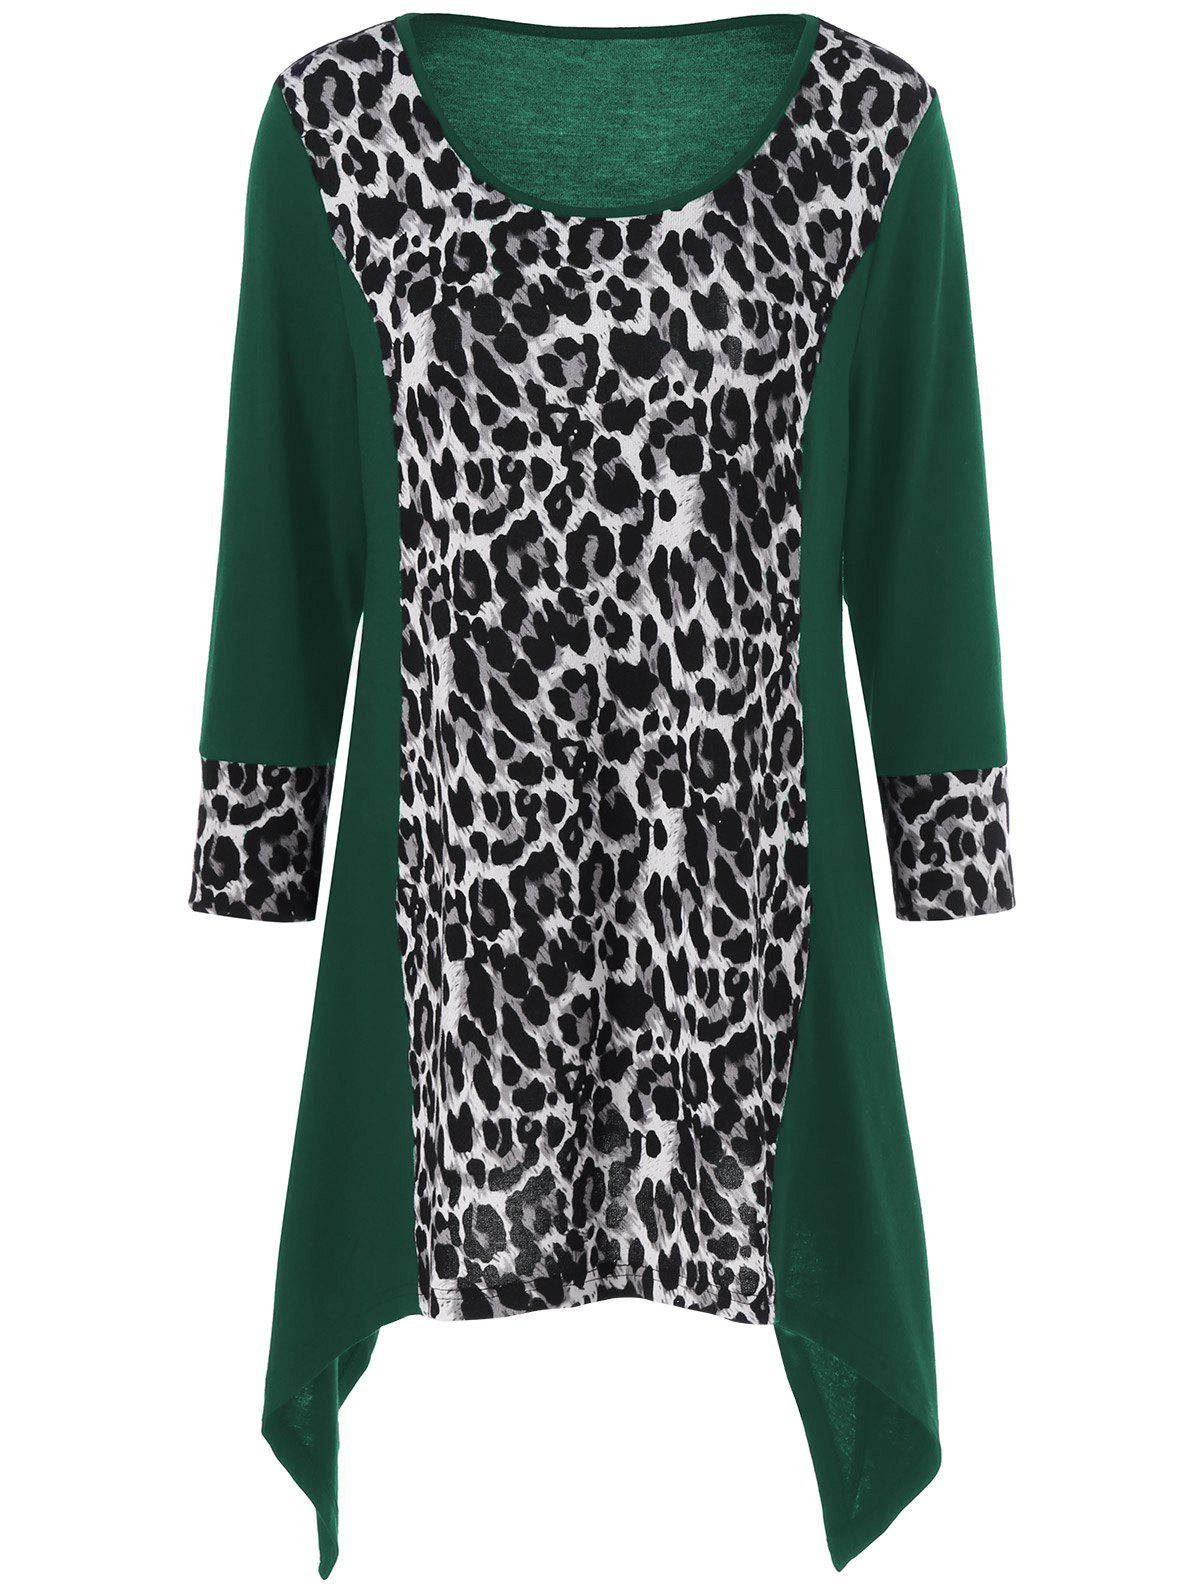 Leopard Print Plus Size Asymmetric T-ShirtWOMEN<br><br>Size: 2XL; Color: GREEN; Material: Polyester,Spandex; Shirt Length: Long; Sleeve Length: Full; Collar: Scoop Neck; Style: Fashion; Season: Fall,Spring; Pattern Type: Leopard; Weight: 0.320kg; Package Contents: 1 x T-Shirt;